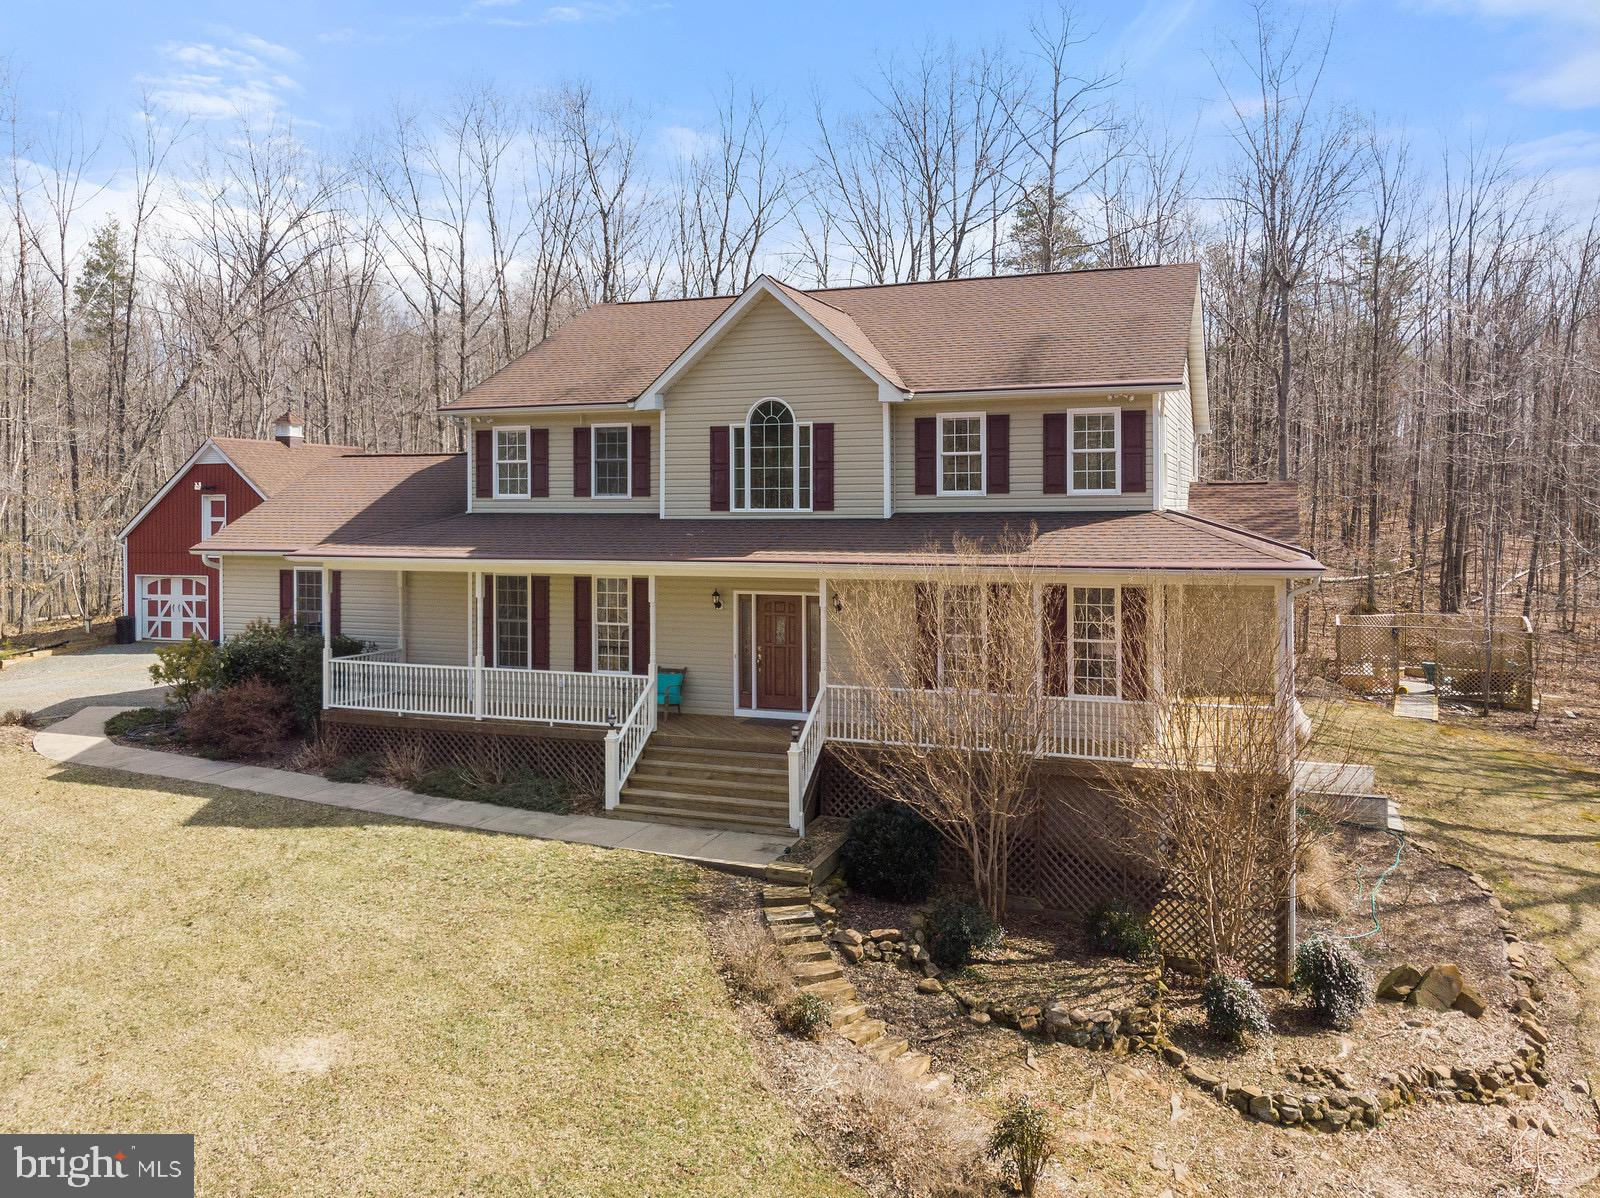 18326 DOGWOOD TRAIL DRIVE, JEFFERSONTON, VA 22724